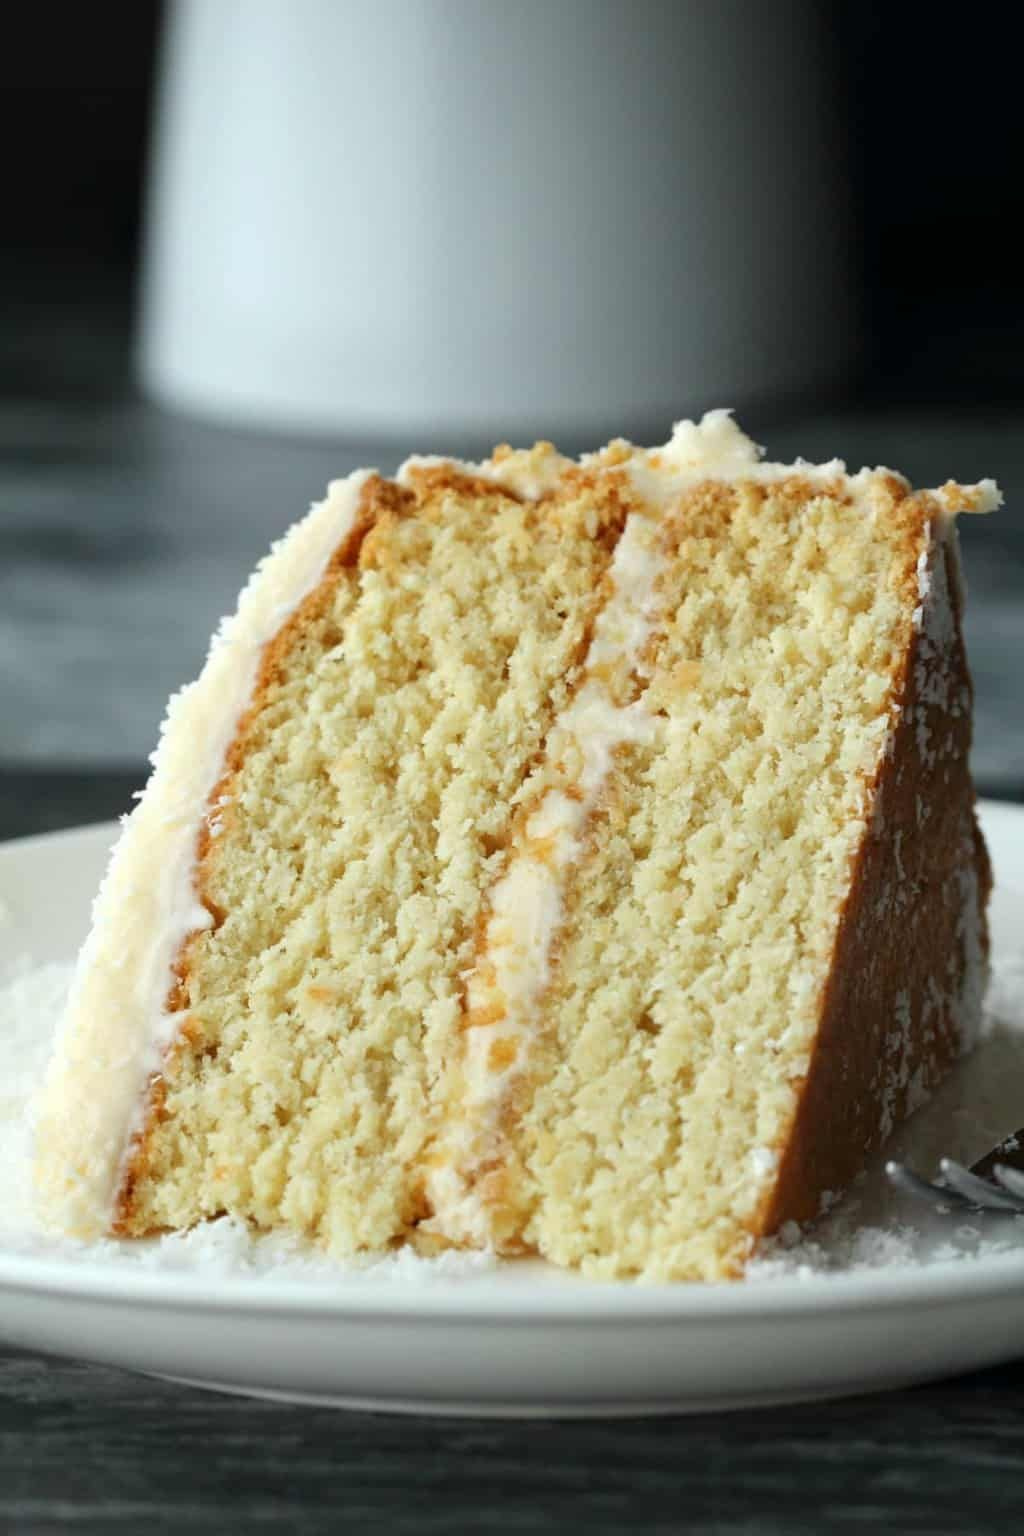 Fabulously Coconutty Two Layered Vegan Coconut Cake Topped With A Decadent Coconut Rum Frosting Vegan Coconut Cake Vegan Rum Cake Recipe Sweet Recipes Desserts